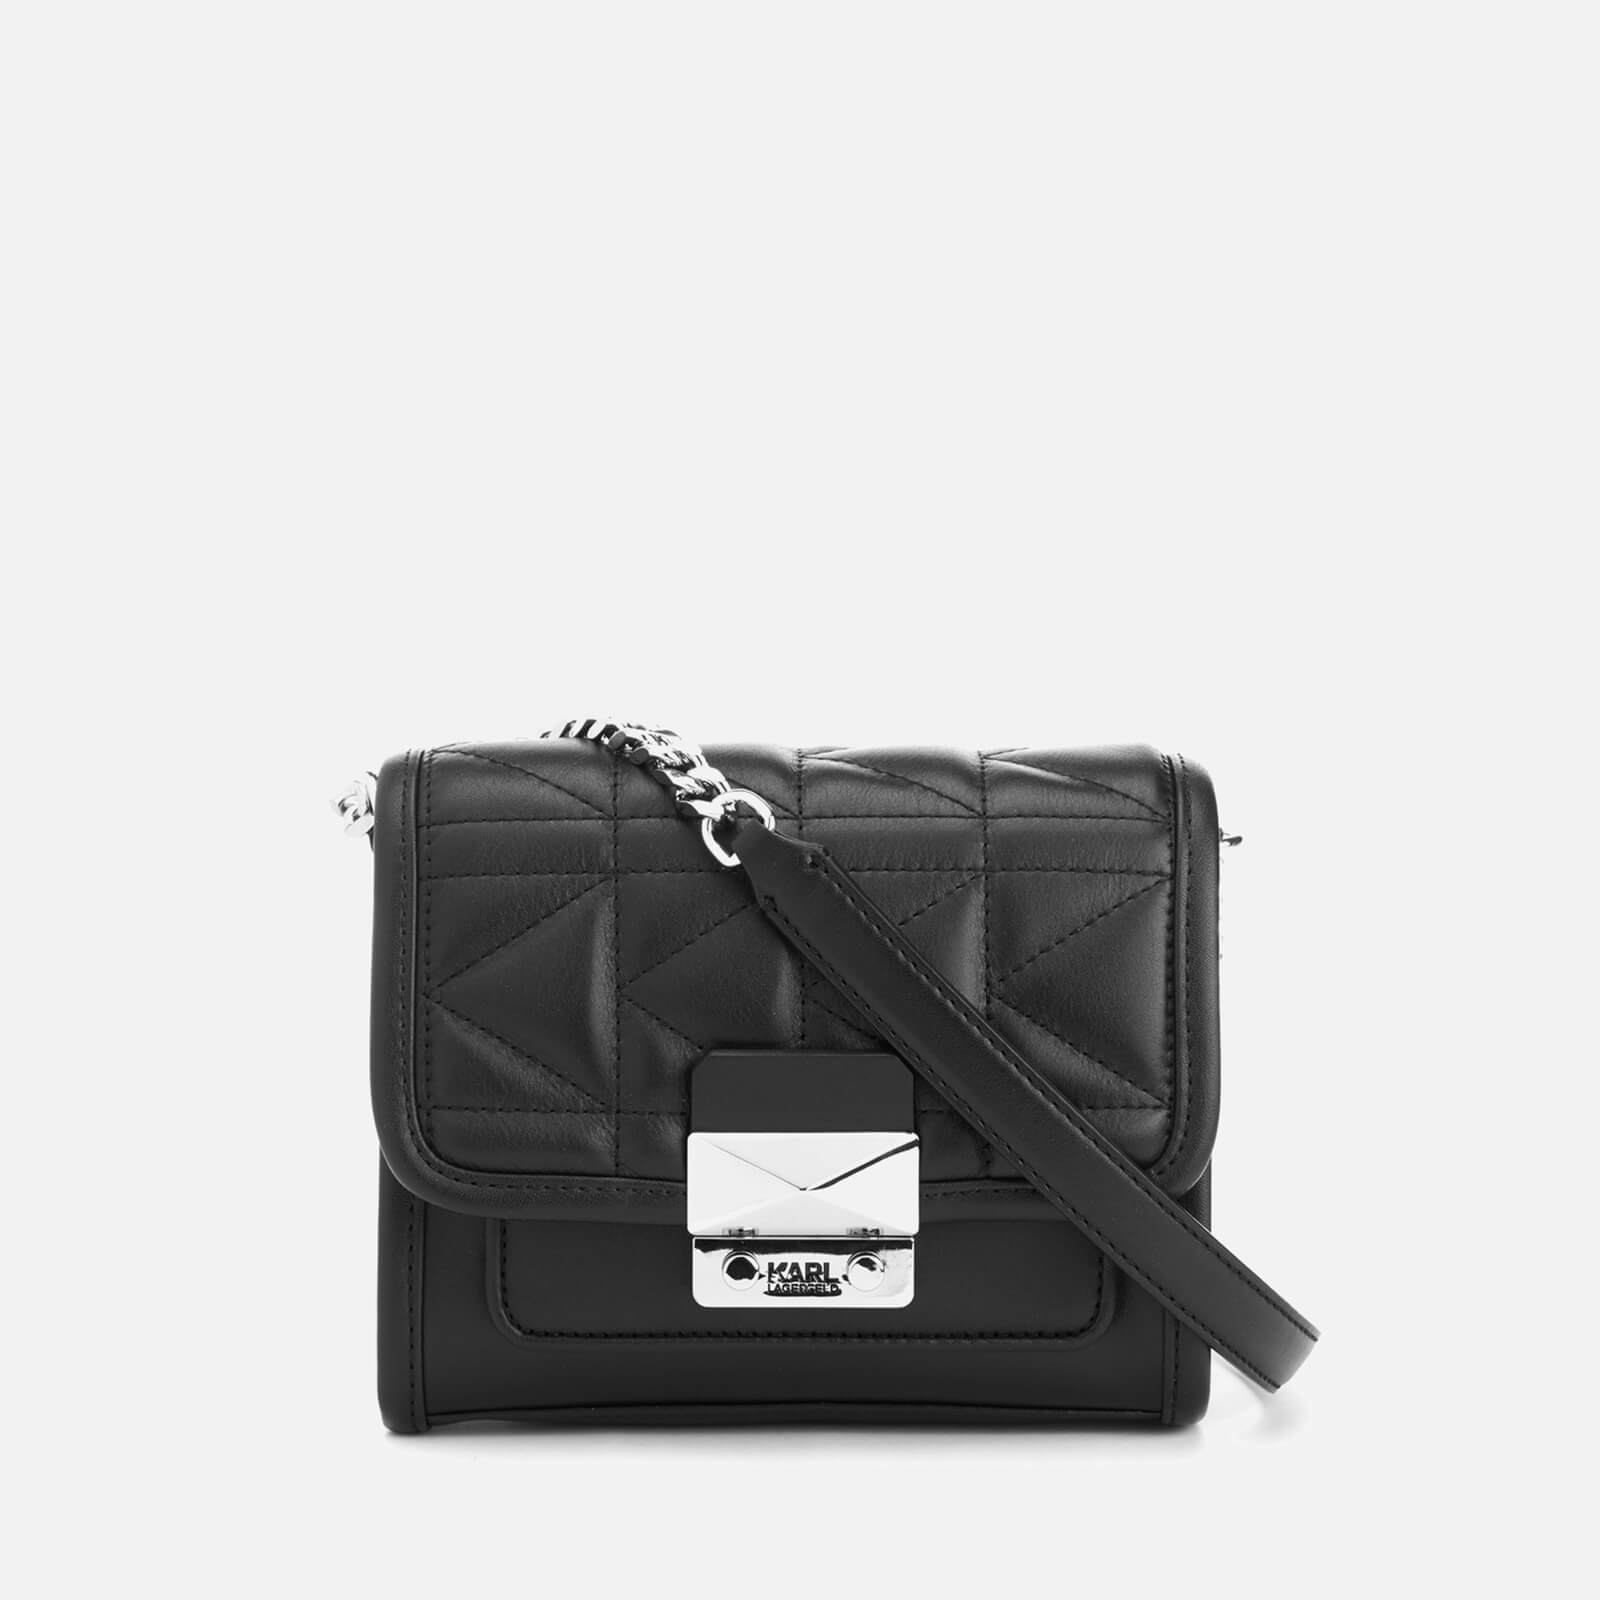 2566377989 Karl Lagerfeld Women s K Kuilted Mini Cross Body Bag - Black - Free UK  Delivery over £50